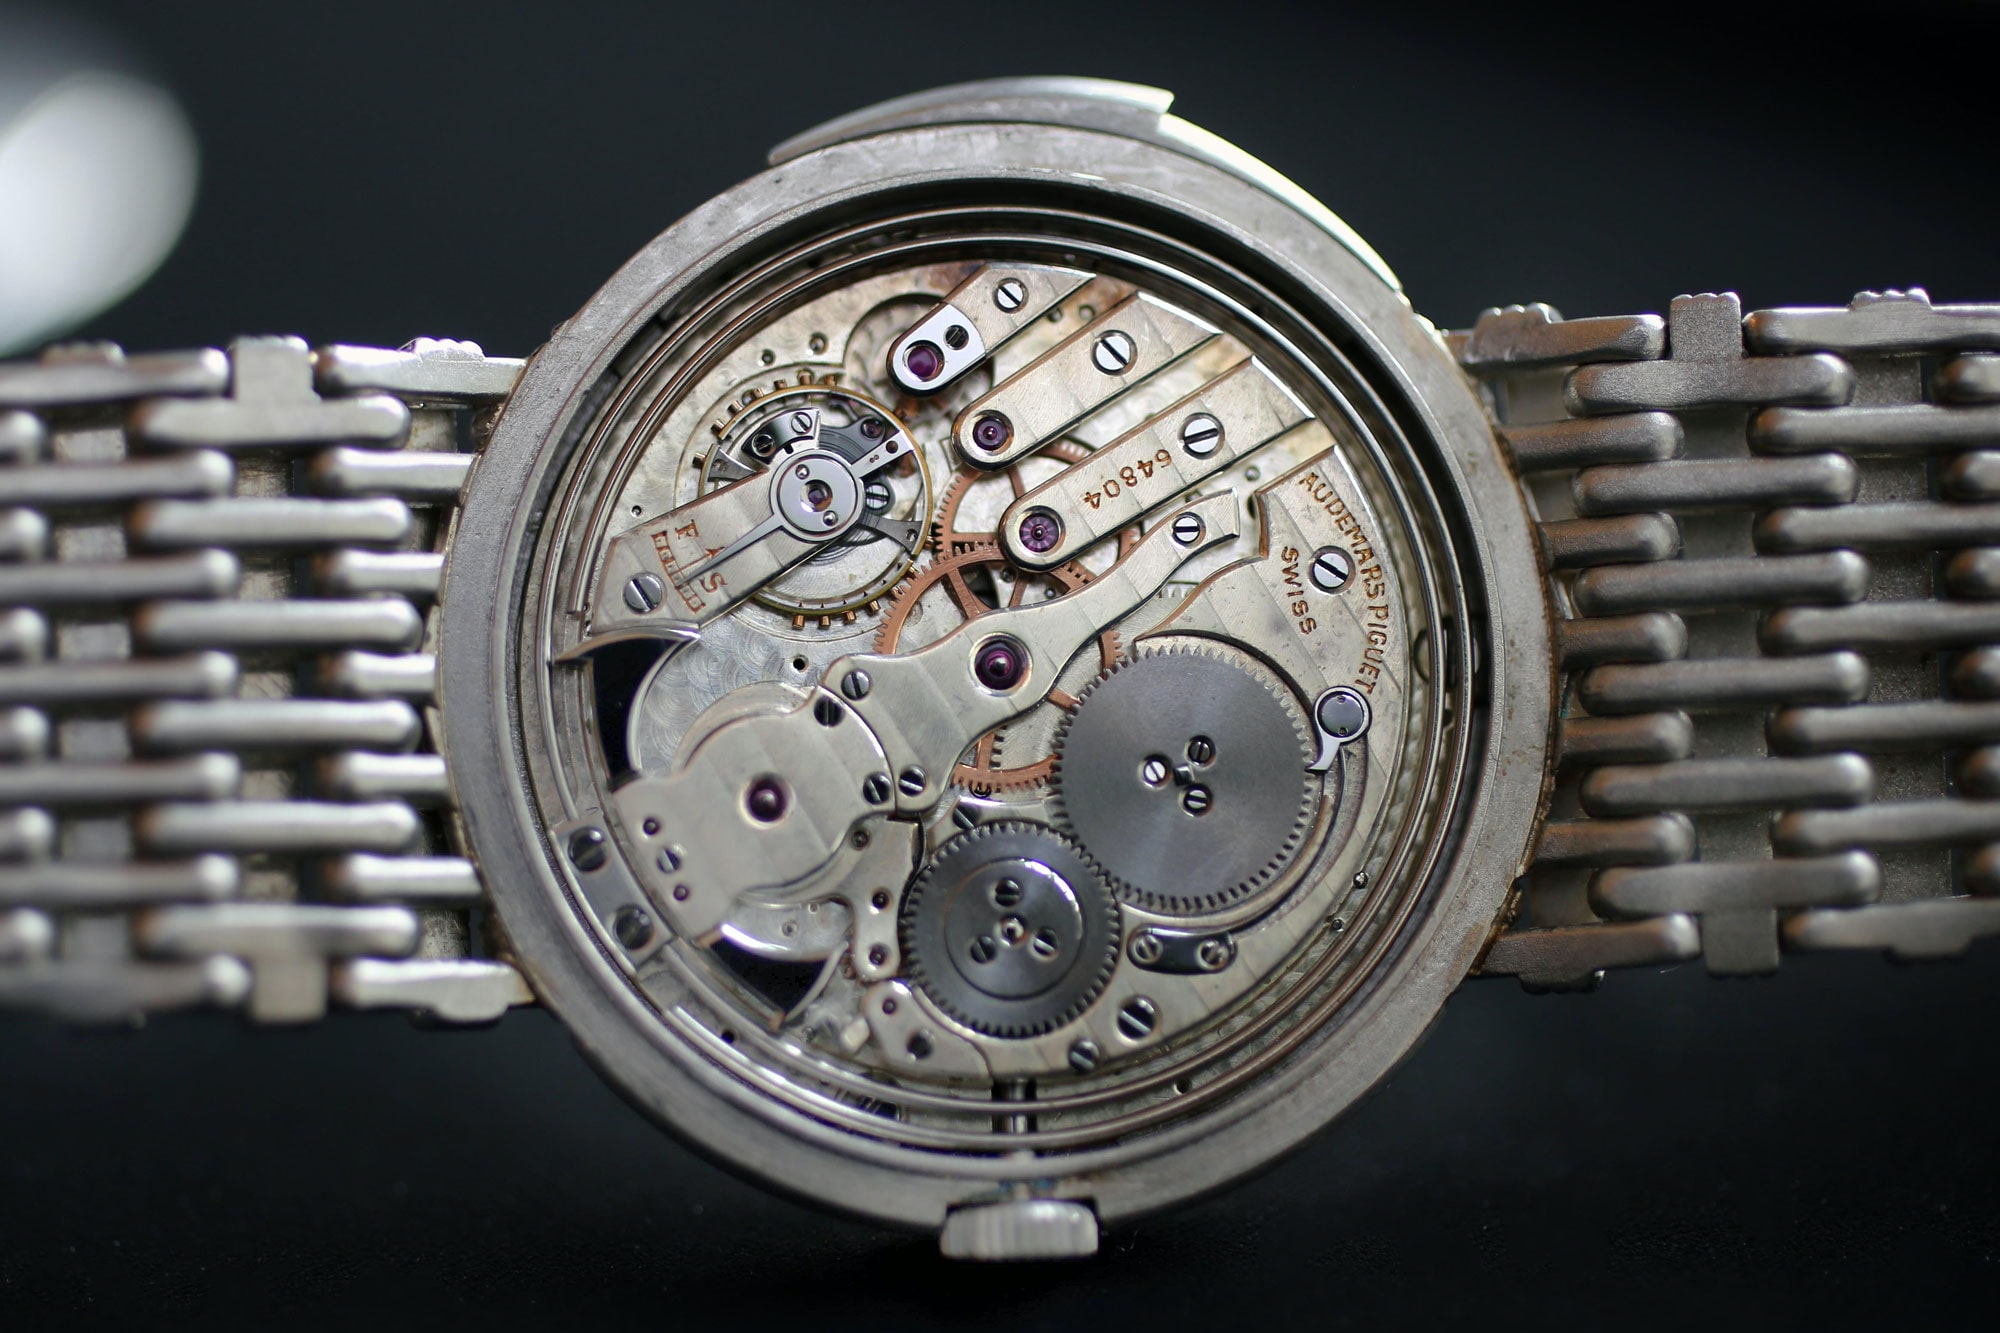 audemars piguet minute repeater platinum bracelet movement Found: A Unique Platinum Audemars Piguet Minute Repeater With A Matching Platinum Bracelet At Christie's Found: A Unique Platinum Audemars Piguet Minute Repeater With A Matching Platinum Bracelet At Christie's IMG 2623